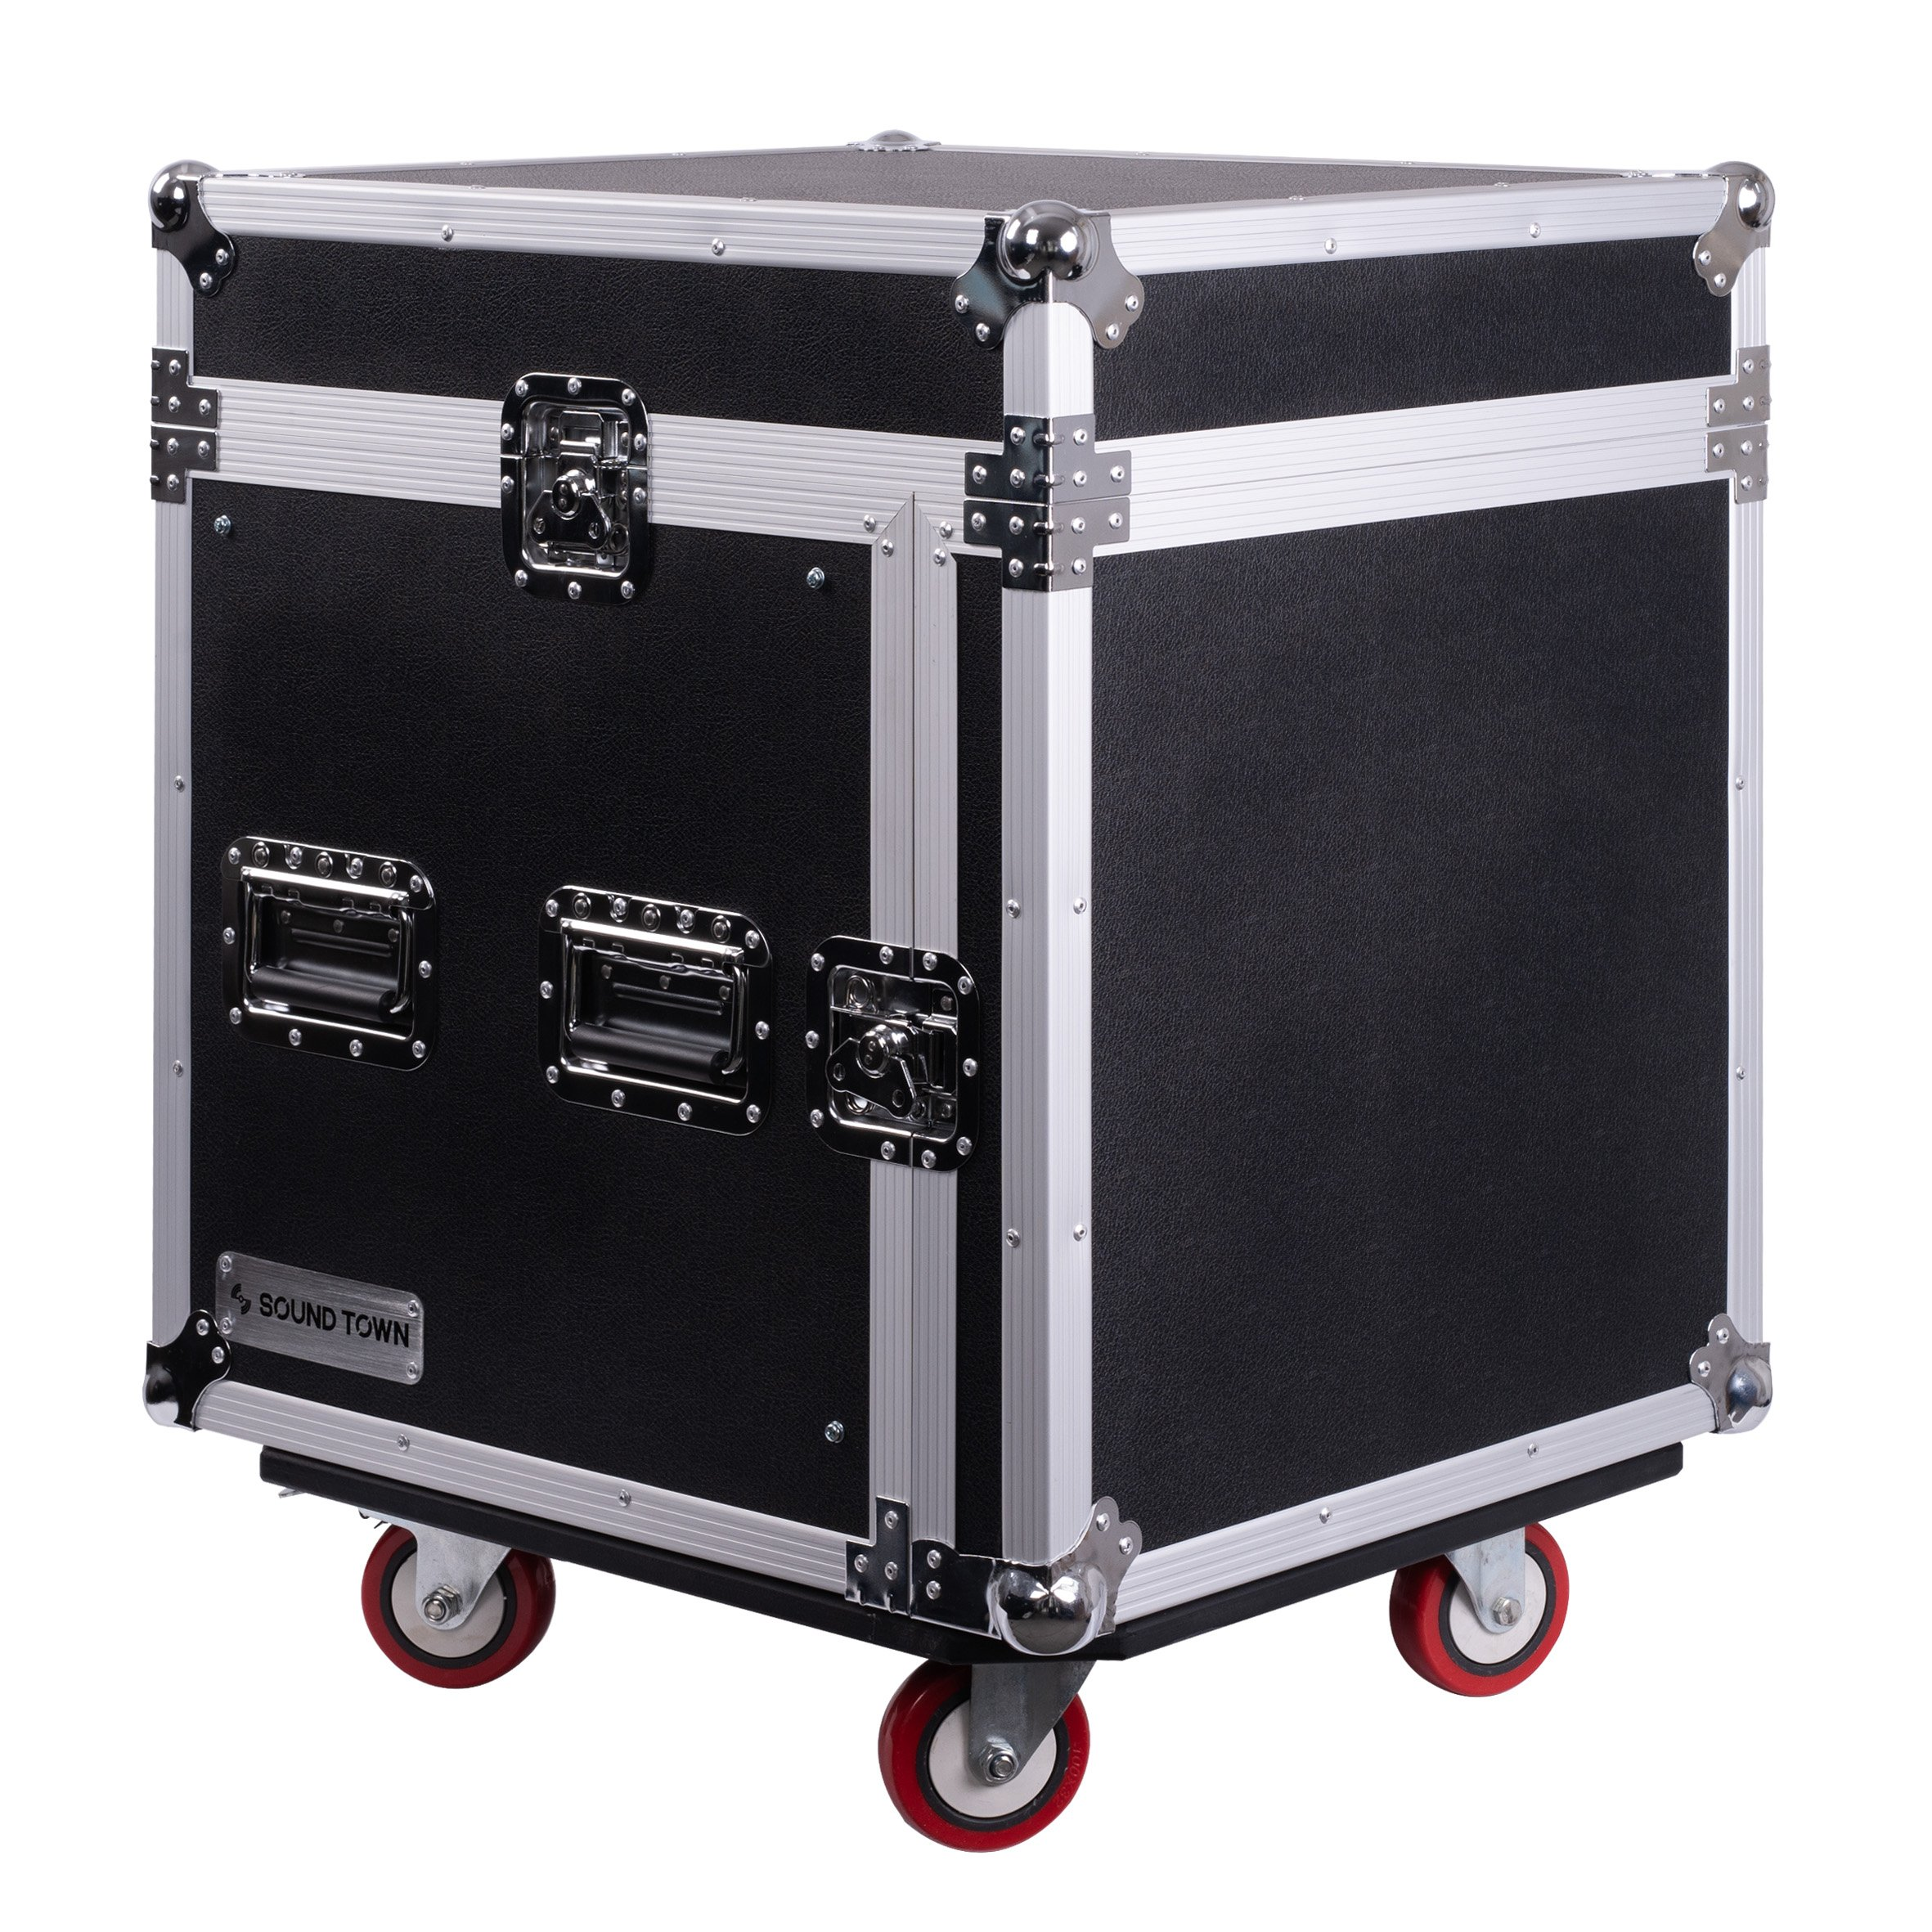 Sound Town 10U PA DJ Pro Audio Rack/Road ATA Server Case with Slant Mixer Top and Casters, 10 Space (STMR-10UW) by Sound Town